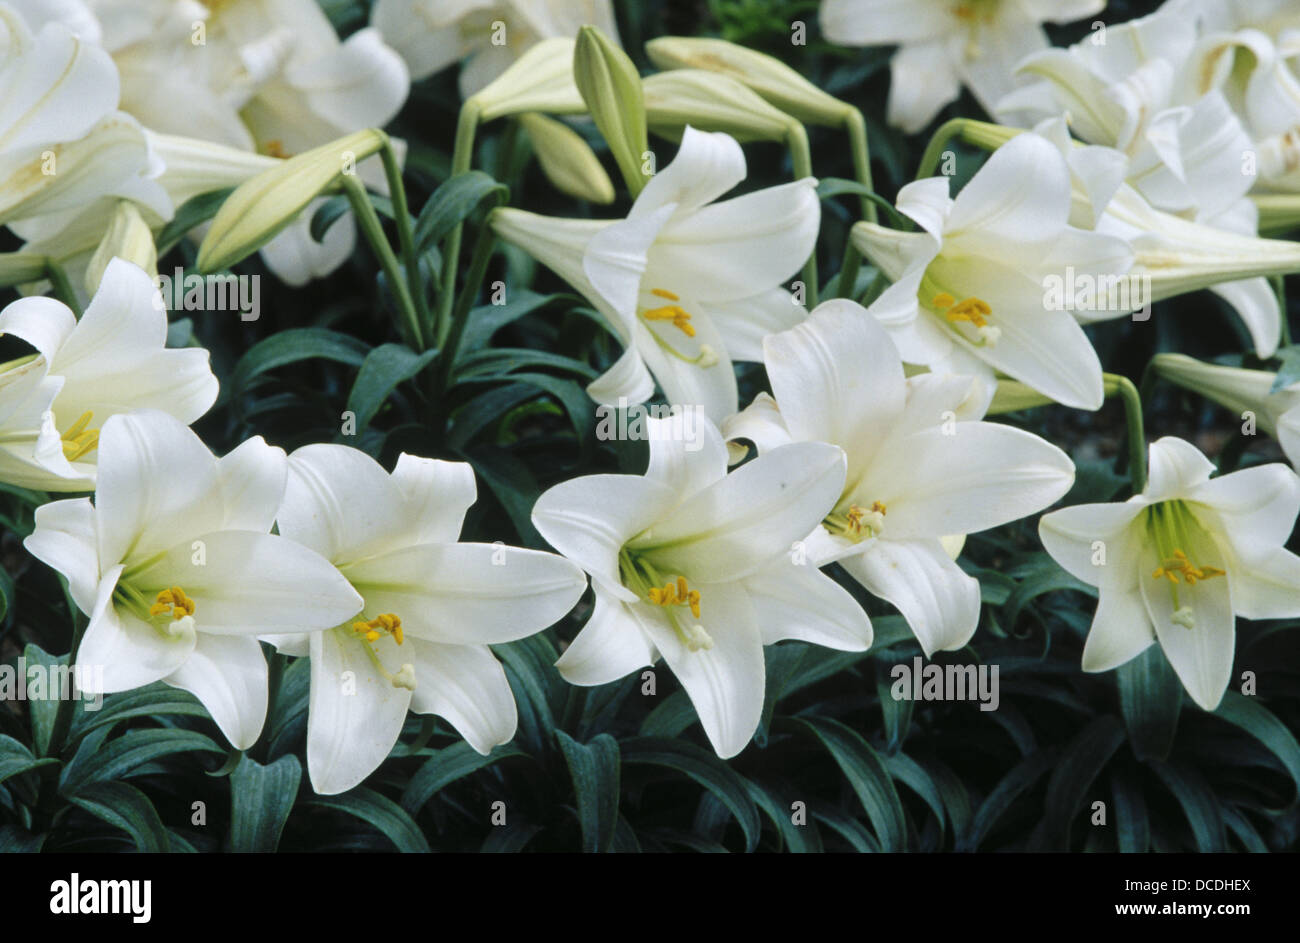 Easter lilies (Lilium longiflorum) blooming in field. Smith River ...